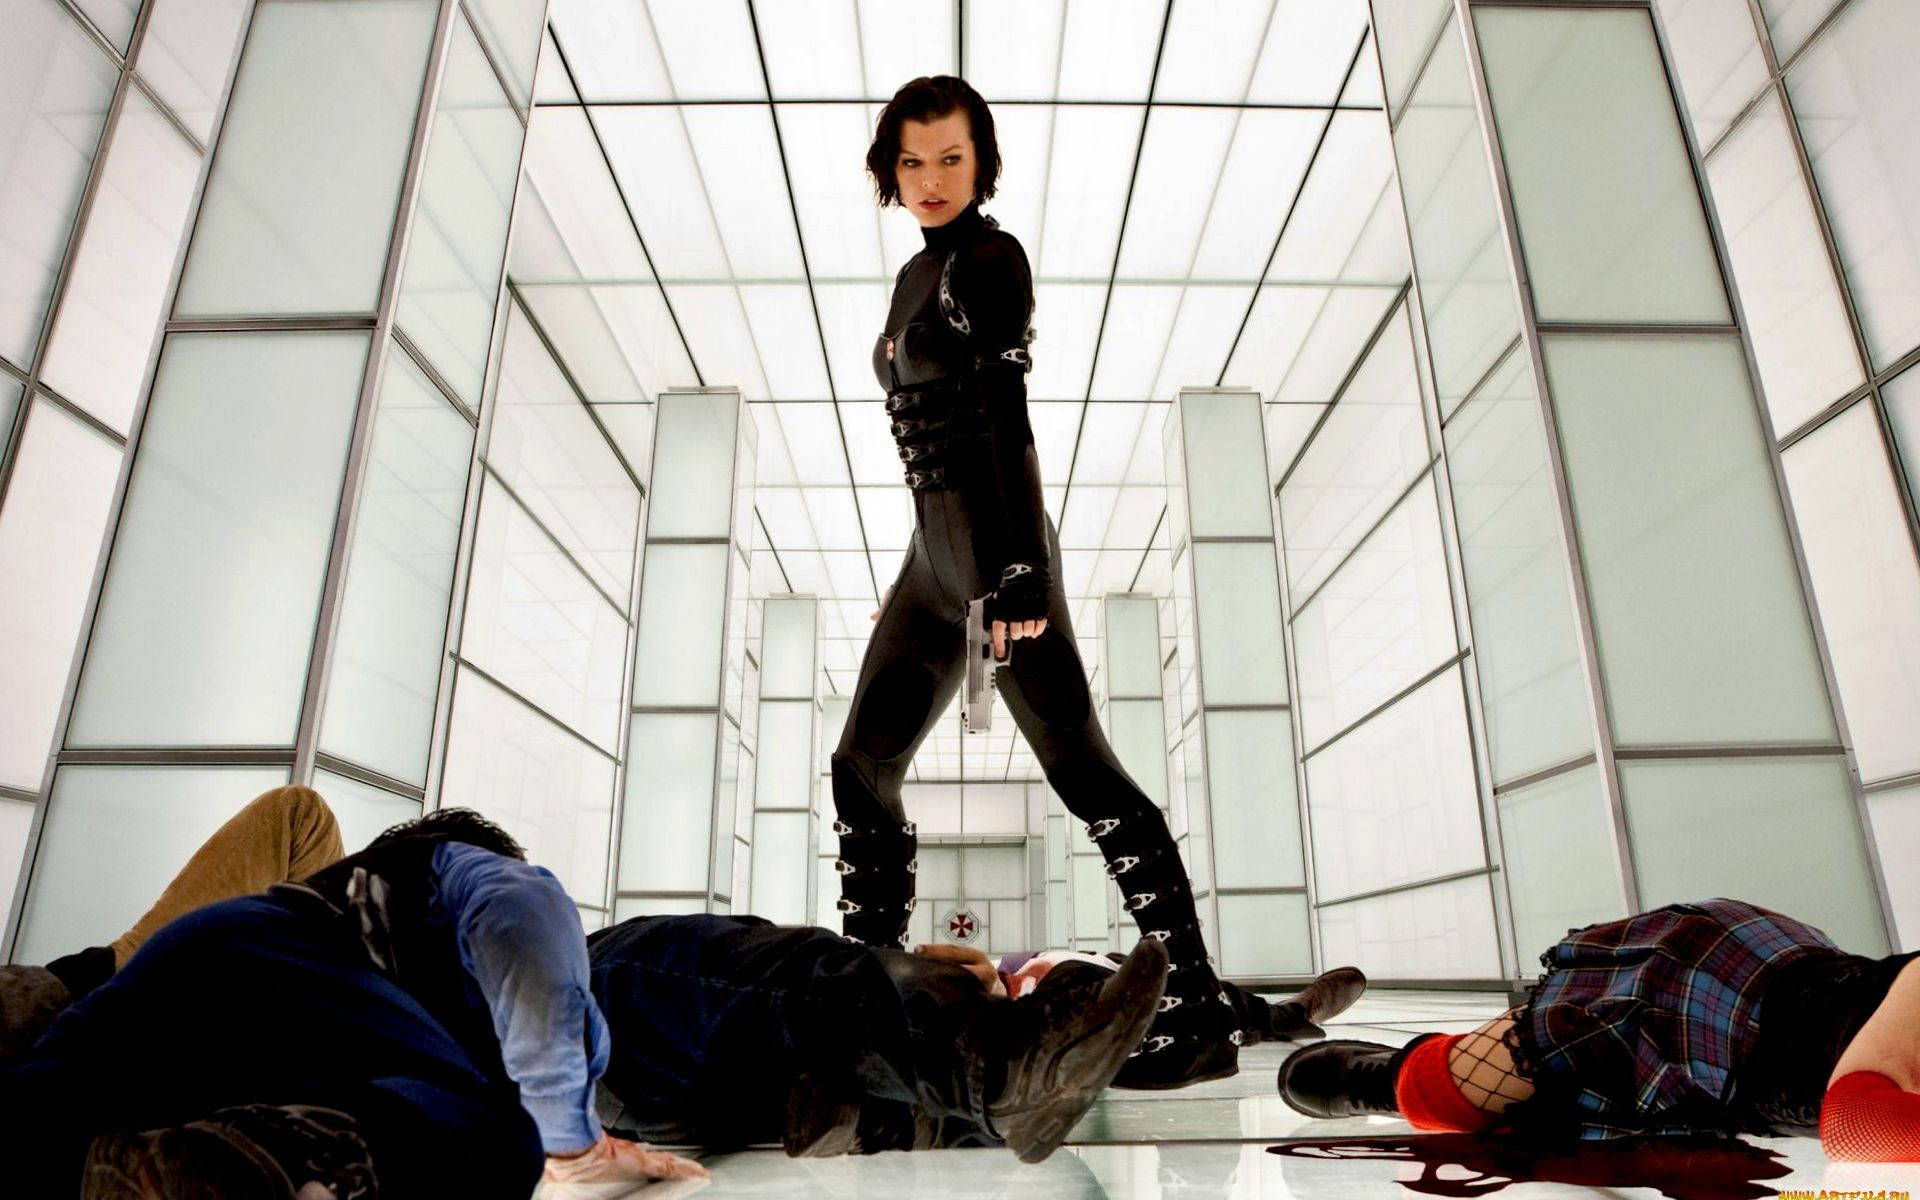 26383 download wallpaper Cinema, People, Girls, Actors, Resident Evil, Milla Jovovich screensavers and pictures for free